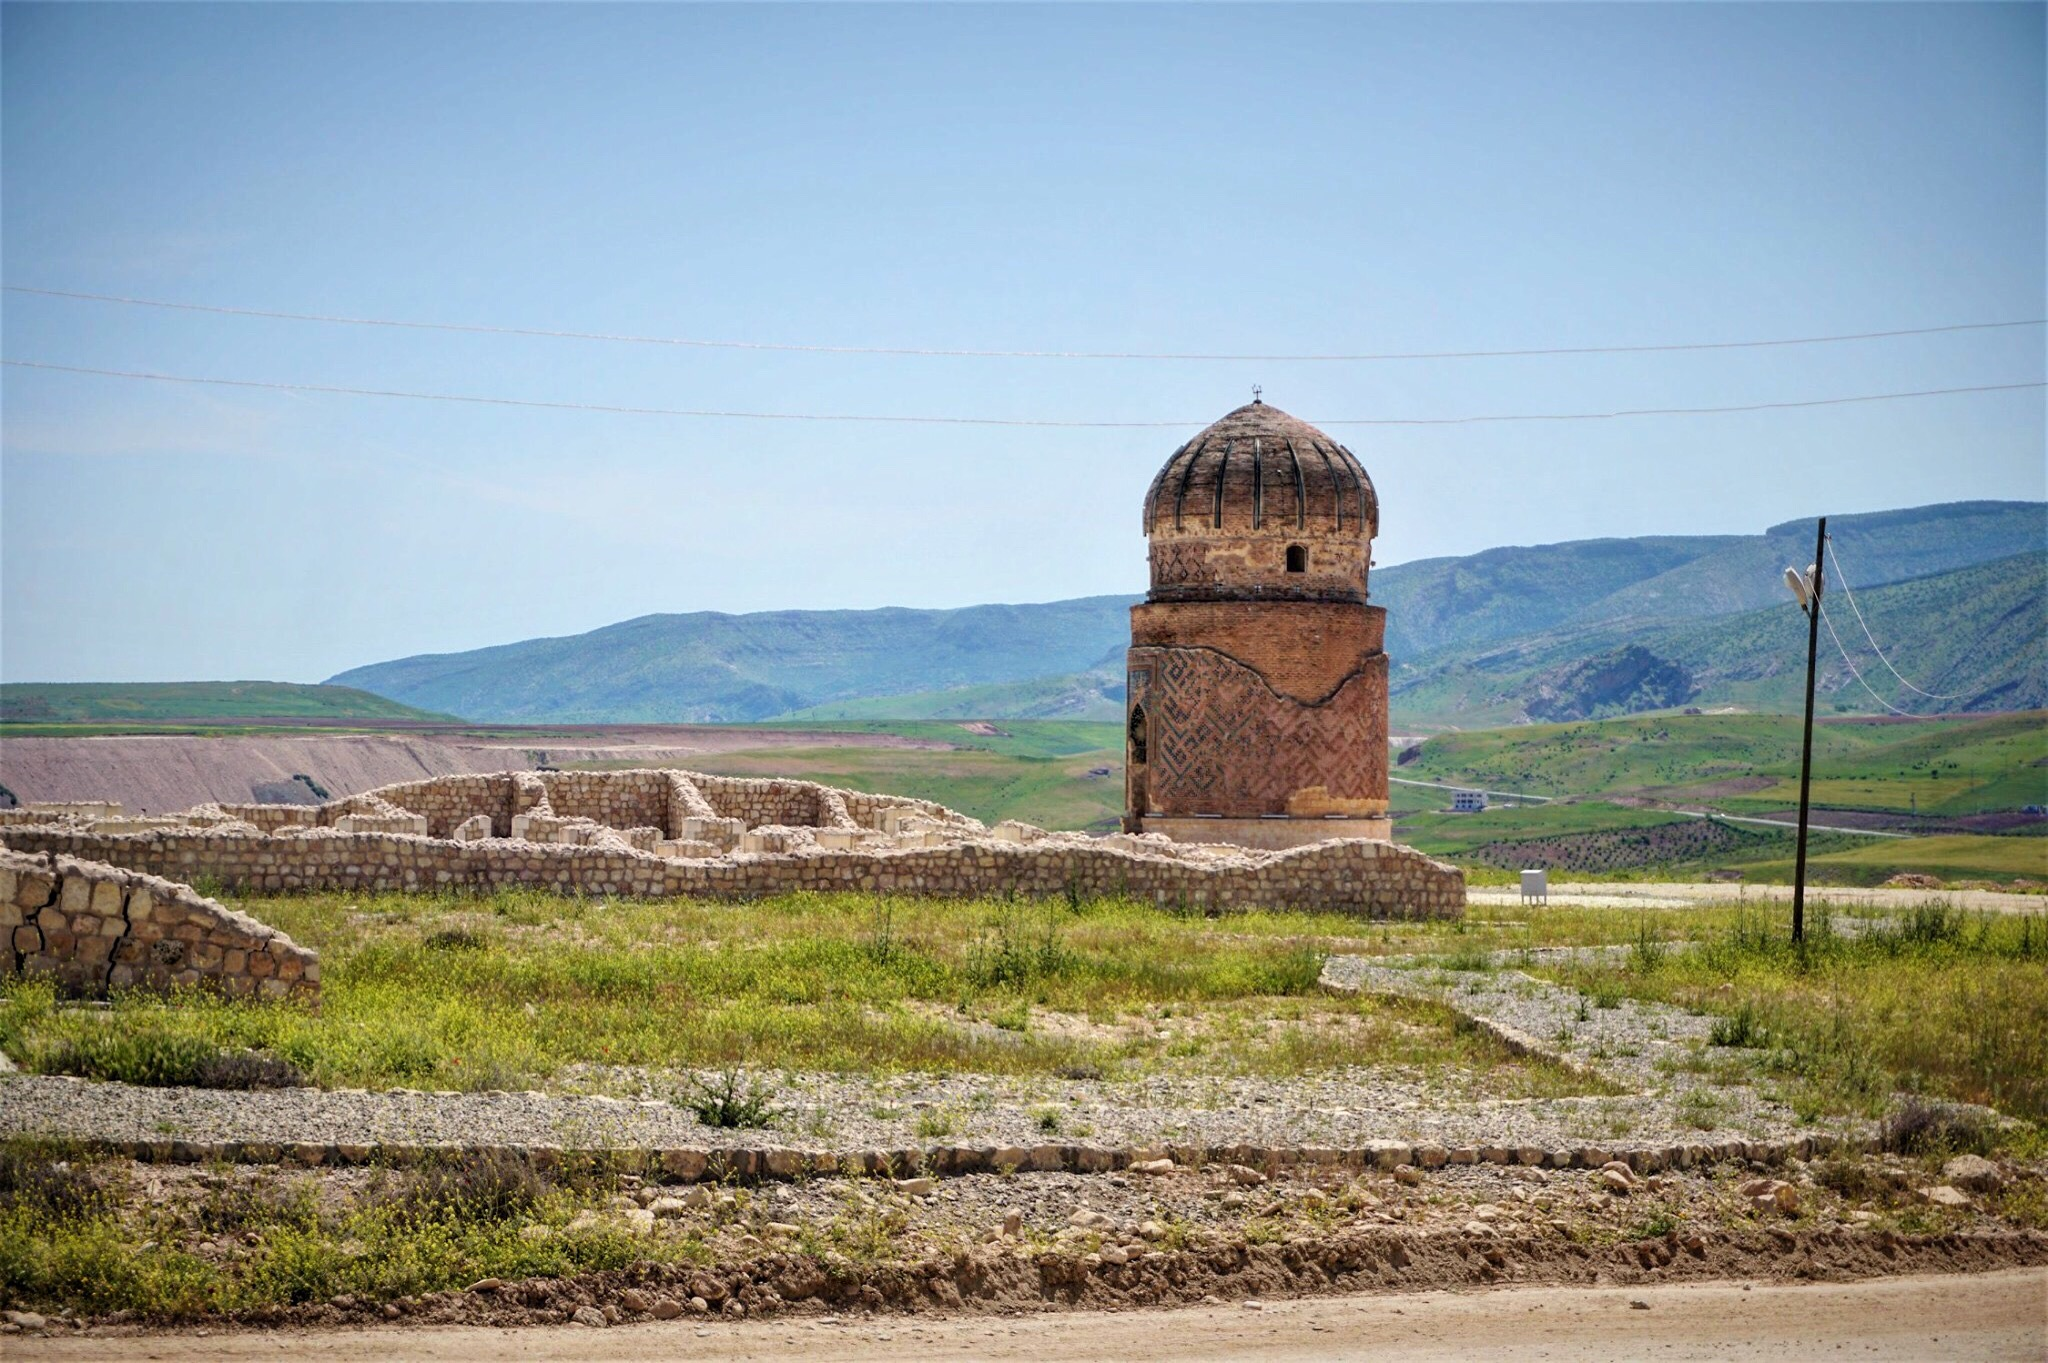 The 550-year-old Zeynel Bey Shrine was displaced May, 2017. It now sits in the archeopark by the 540-year-old Artuqid hamam that is surrounded with replica structures.